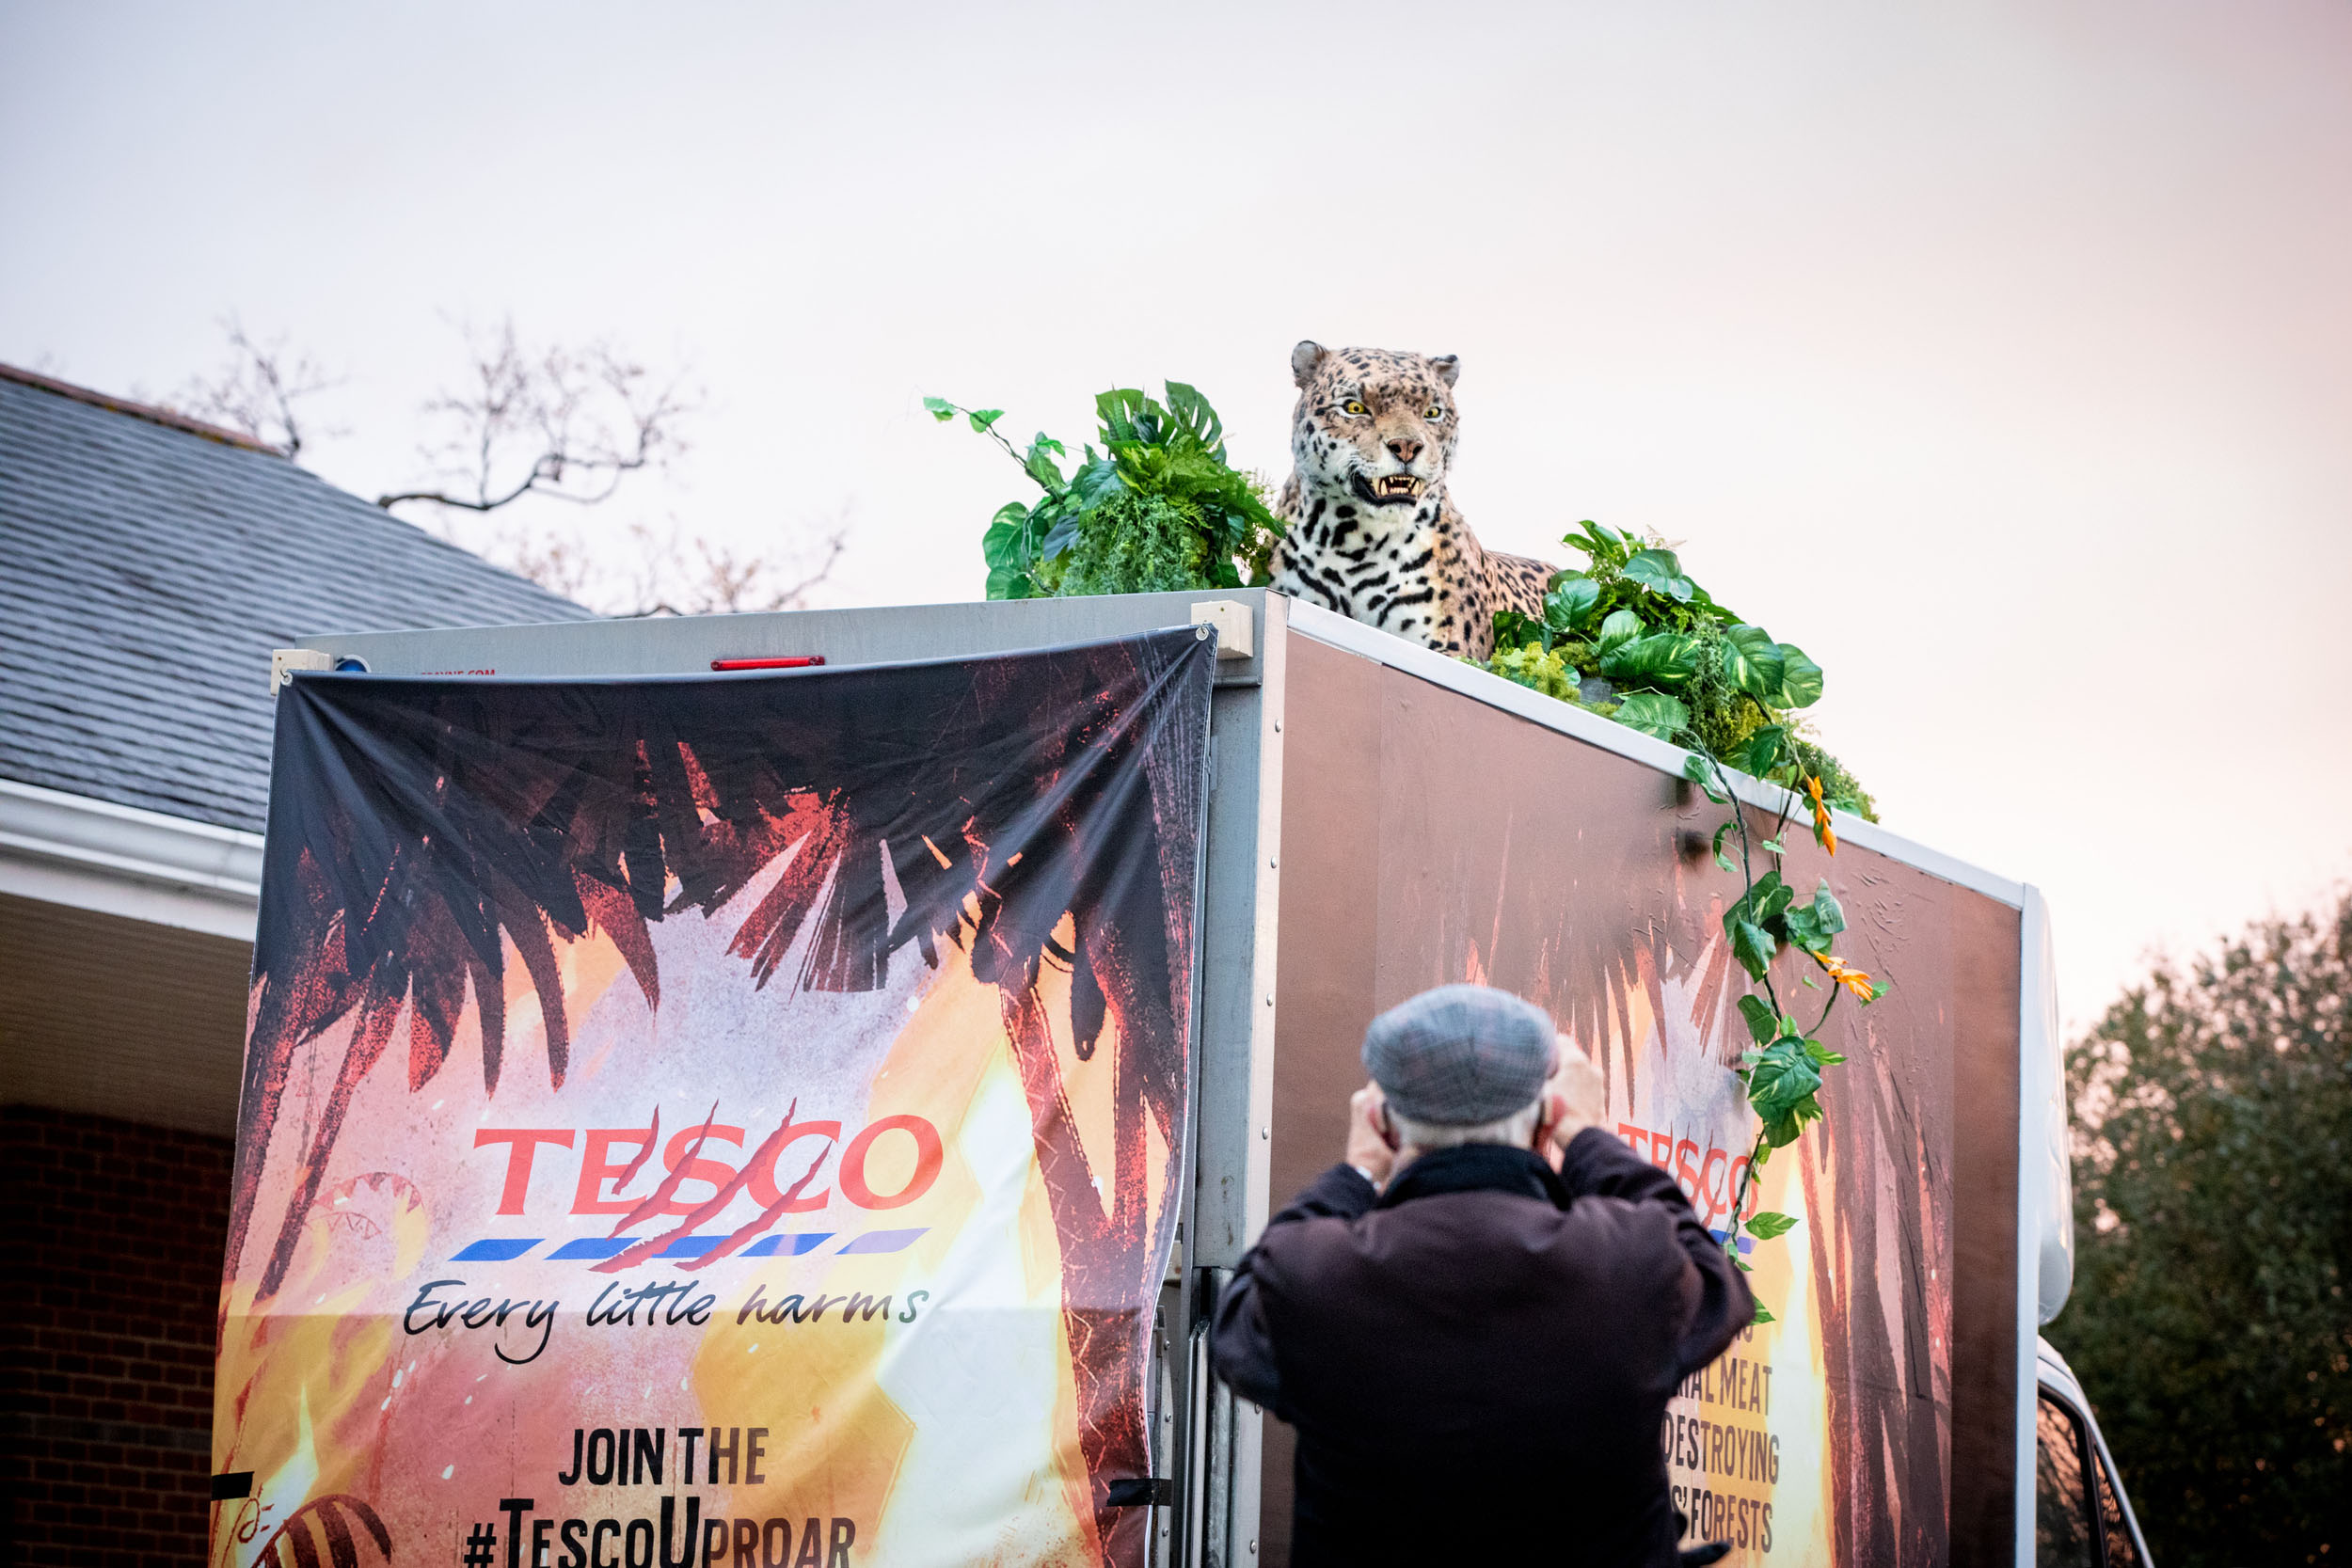 A member of the public takes a photo of a realistic animatronic jaguar sitting on top of a van branded with satirical tesco Graphics and slogans like 'Every little harms'.